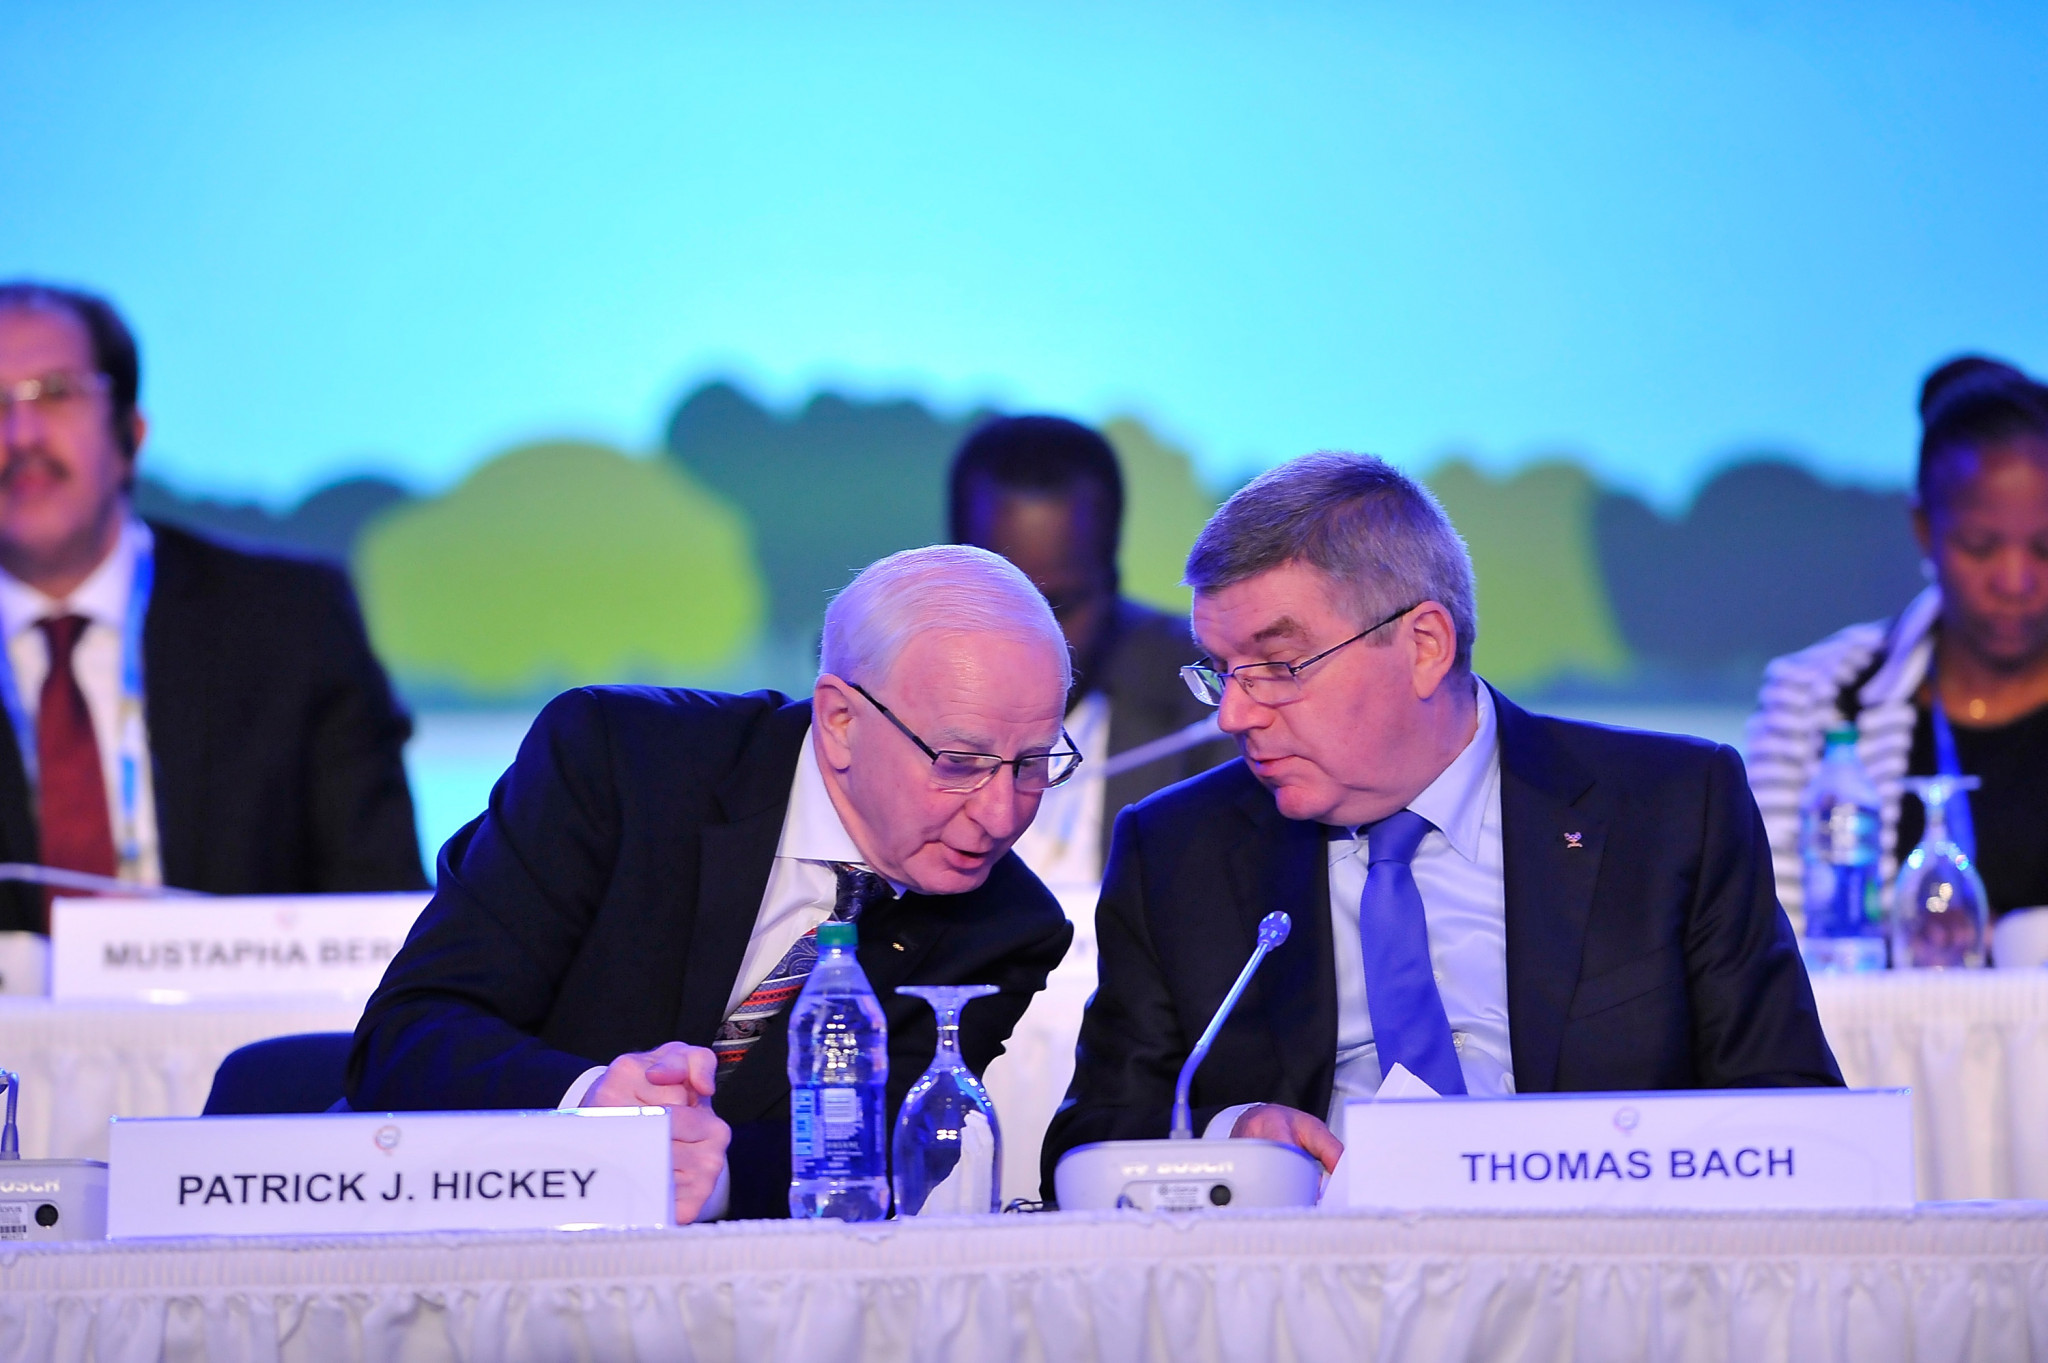 Patrick Hickey pictured with IOC President Thomas Bach ©Getty Images